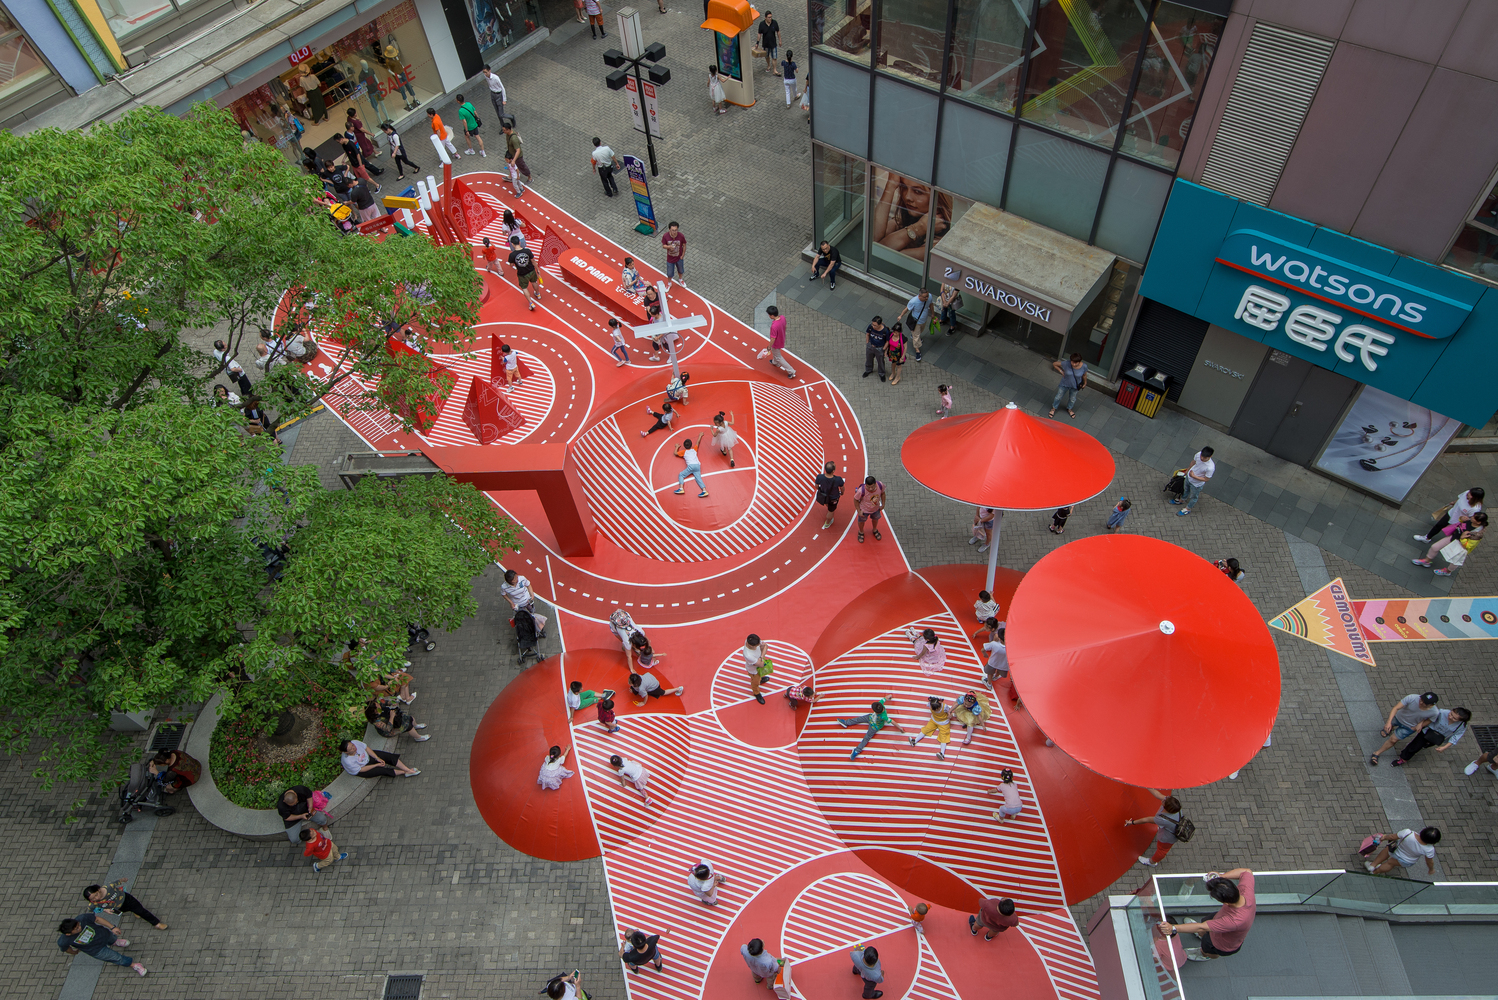 Gallery Of Temporary Plazas 13 Public Spaces That Activate The City 9